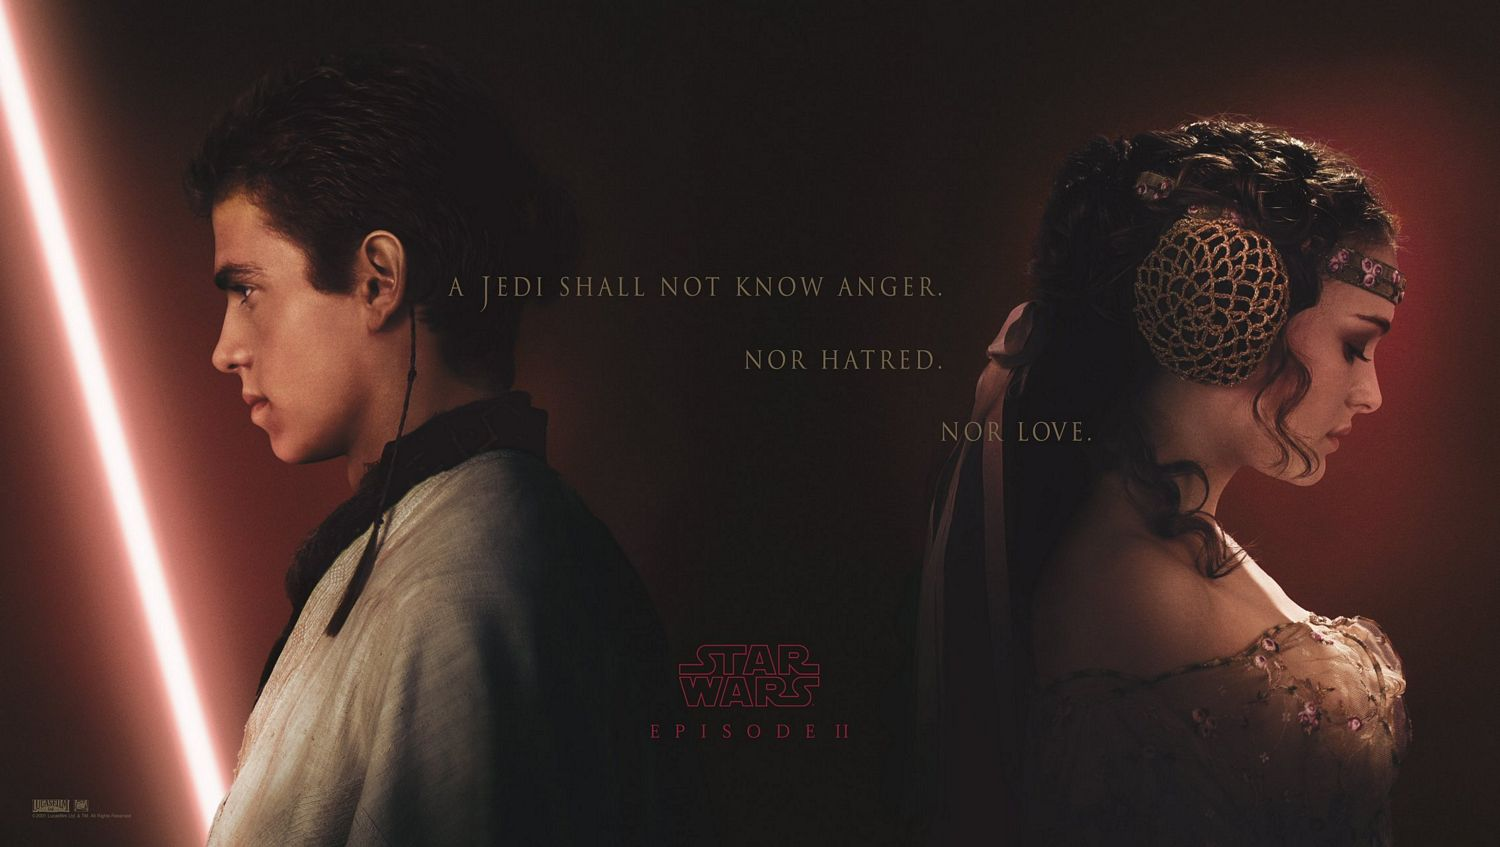 Attack of the Clones - Anakin and Padme